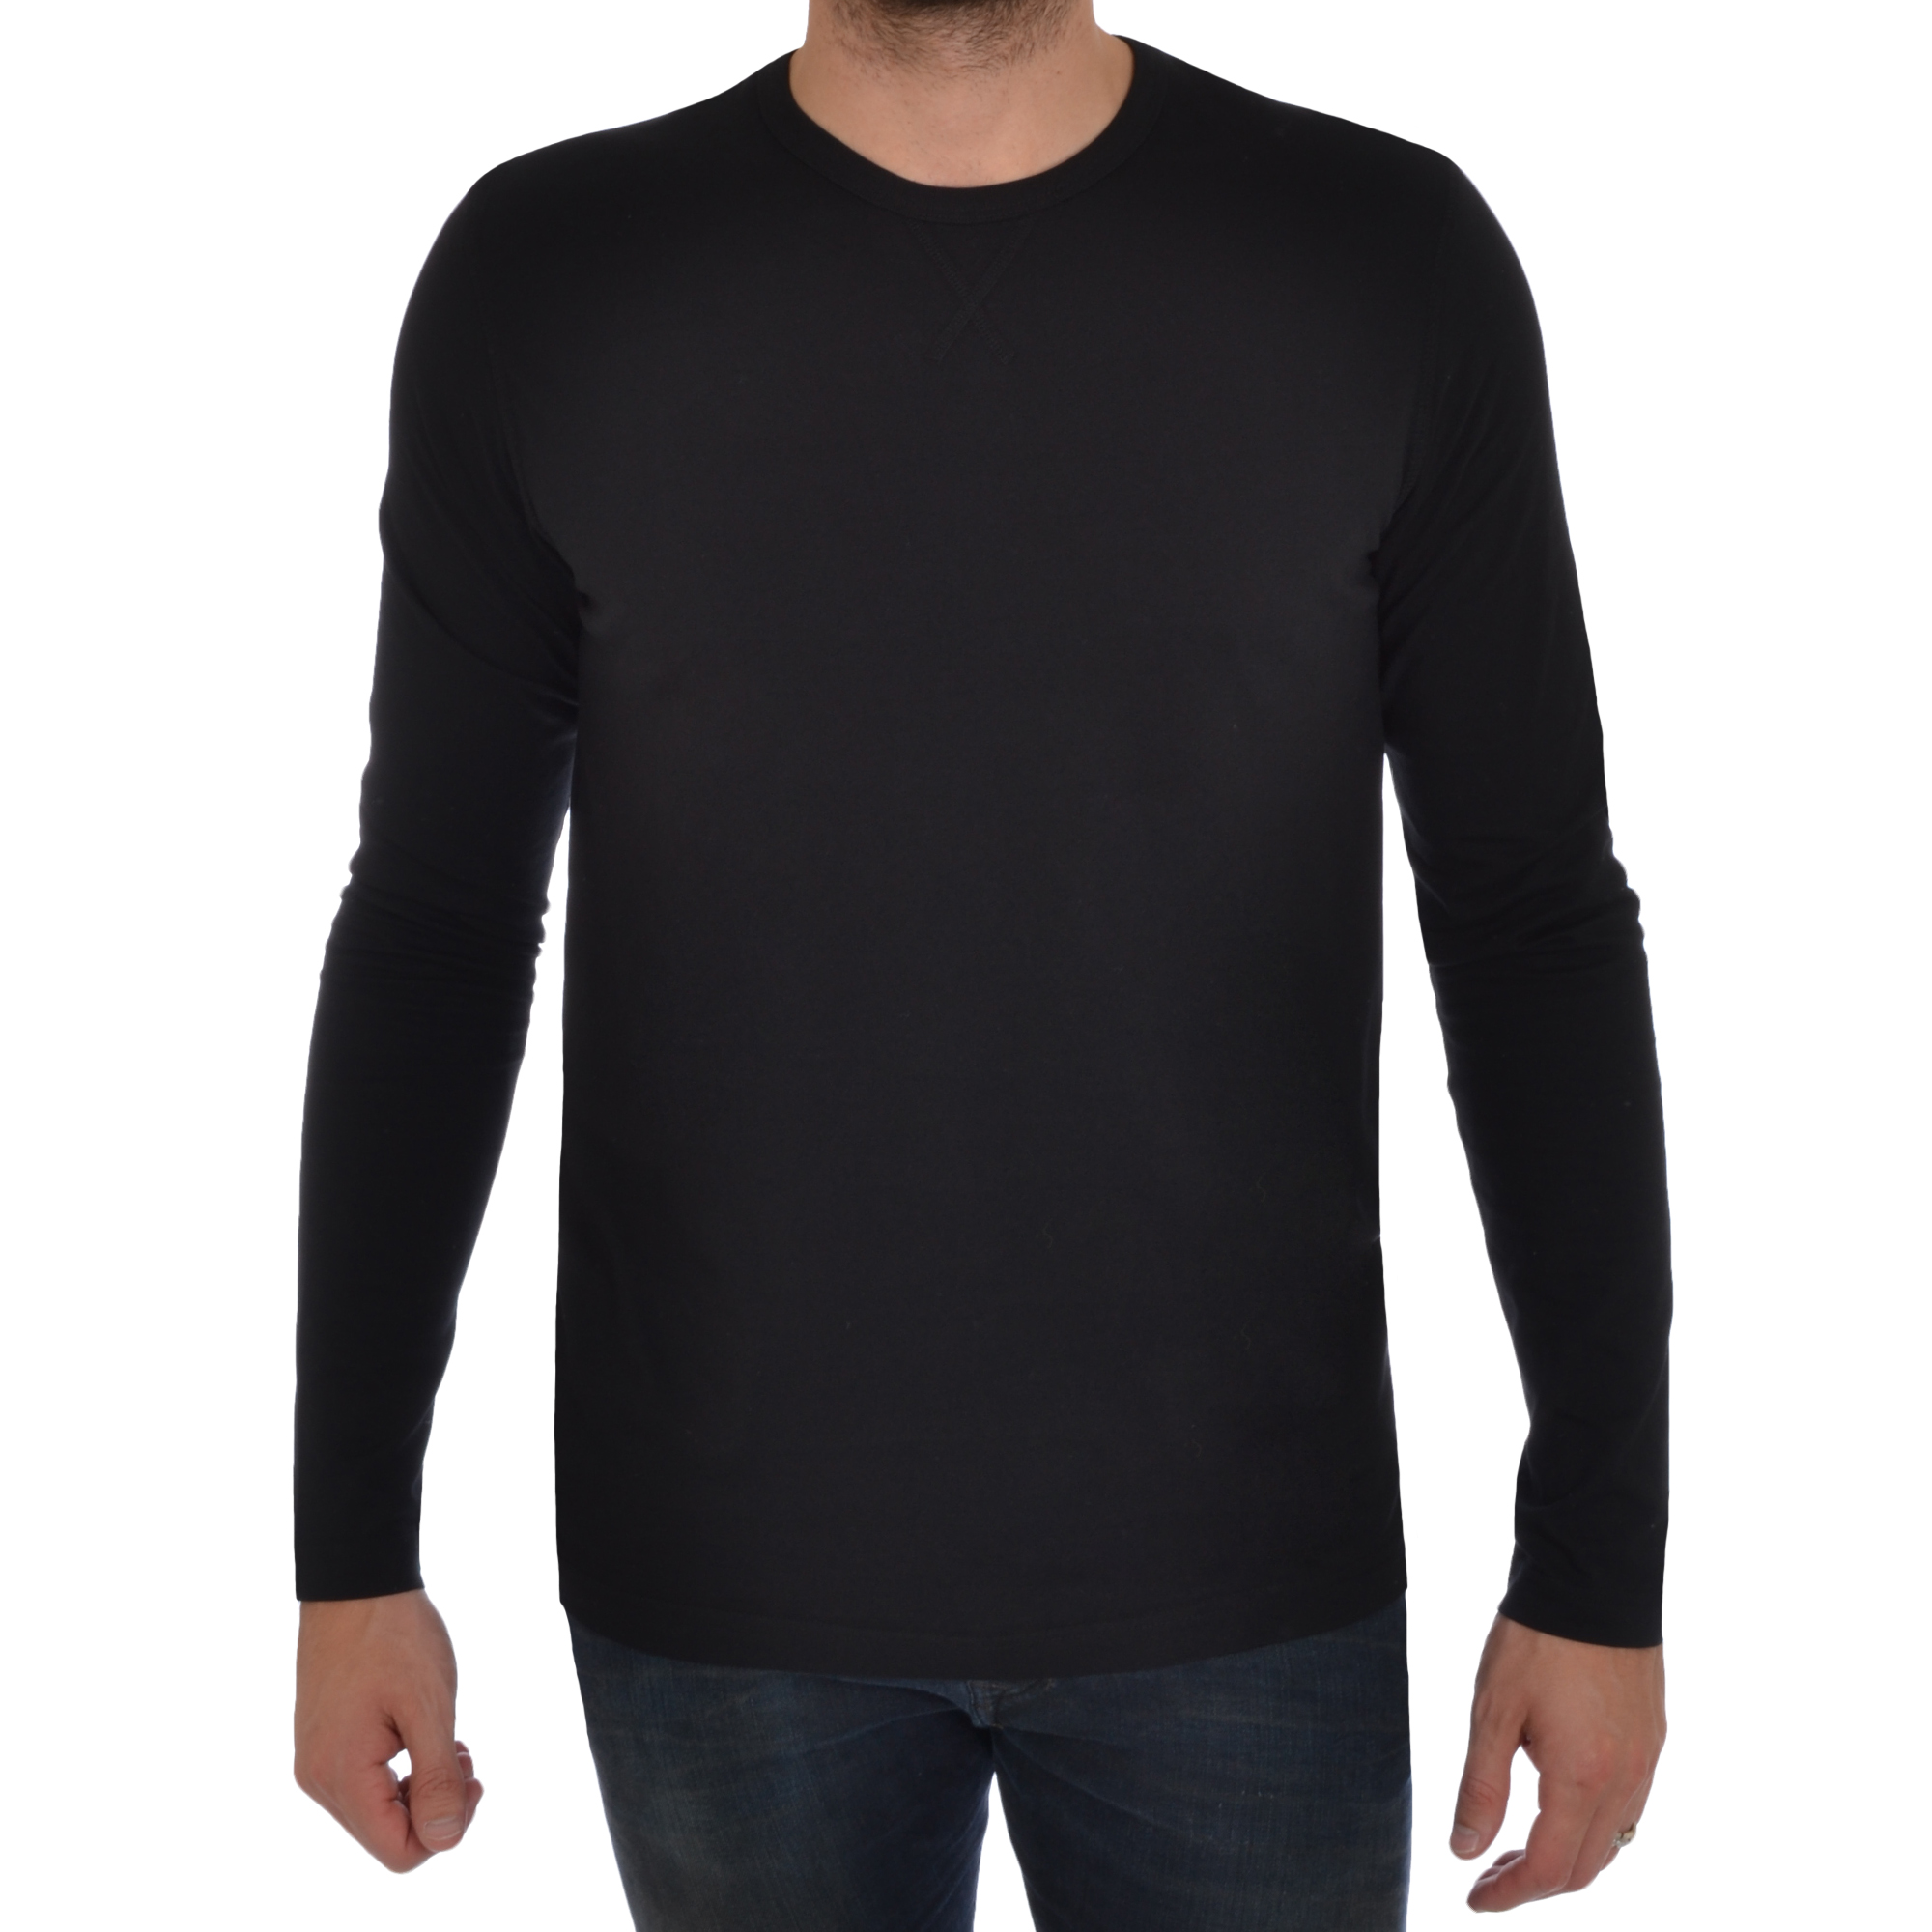 Men's Long Sleeve Shirts. Store availability. Search your store by entering zip code or city, state. Go. Sort. Best match Dallas Cowboys Mens Nike Wordmark Short Sleeve T-Shirt. Product - Kingston Ontario Mens Long Sleeve Shirts. Clearance. Product Image. Price $ List price $